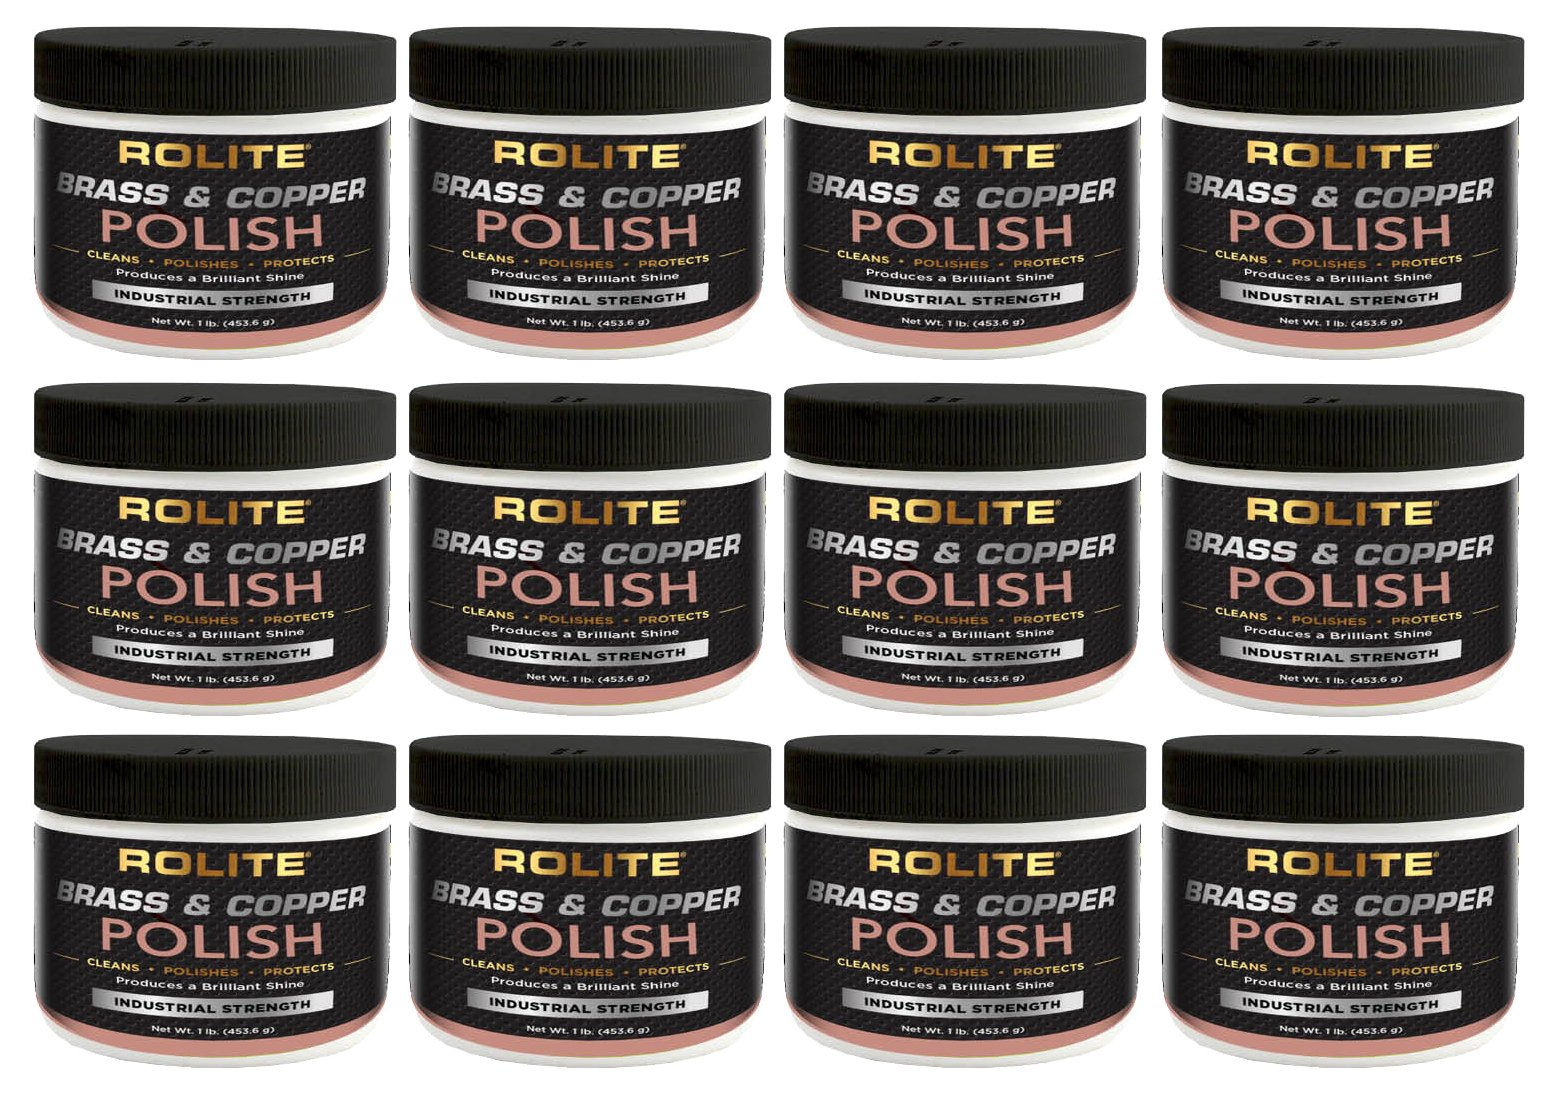 Rolite Brass & Copper Polish (1lb) Instant Polishing & Tarnish Removal on Railings, Elevators, Fixtures, Hotels, Cruise Ships, Buildings 12 Pack